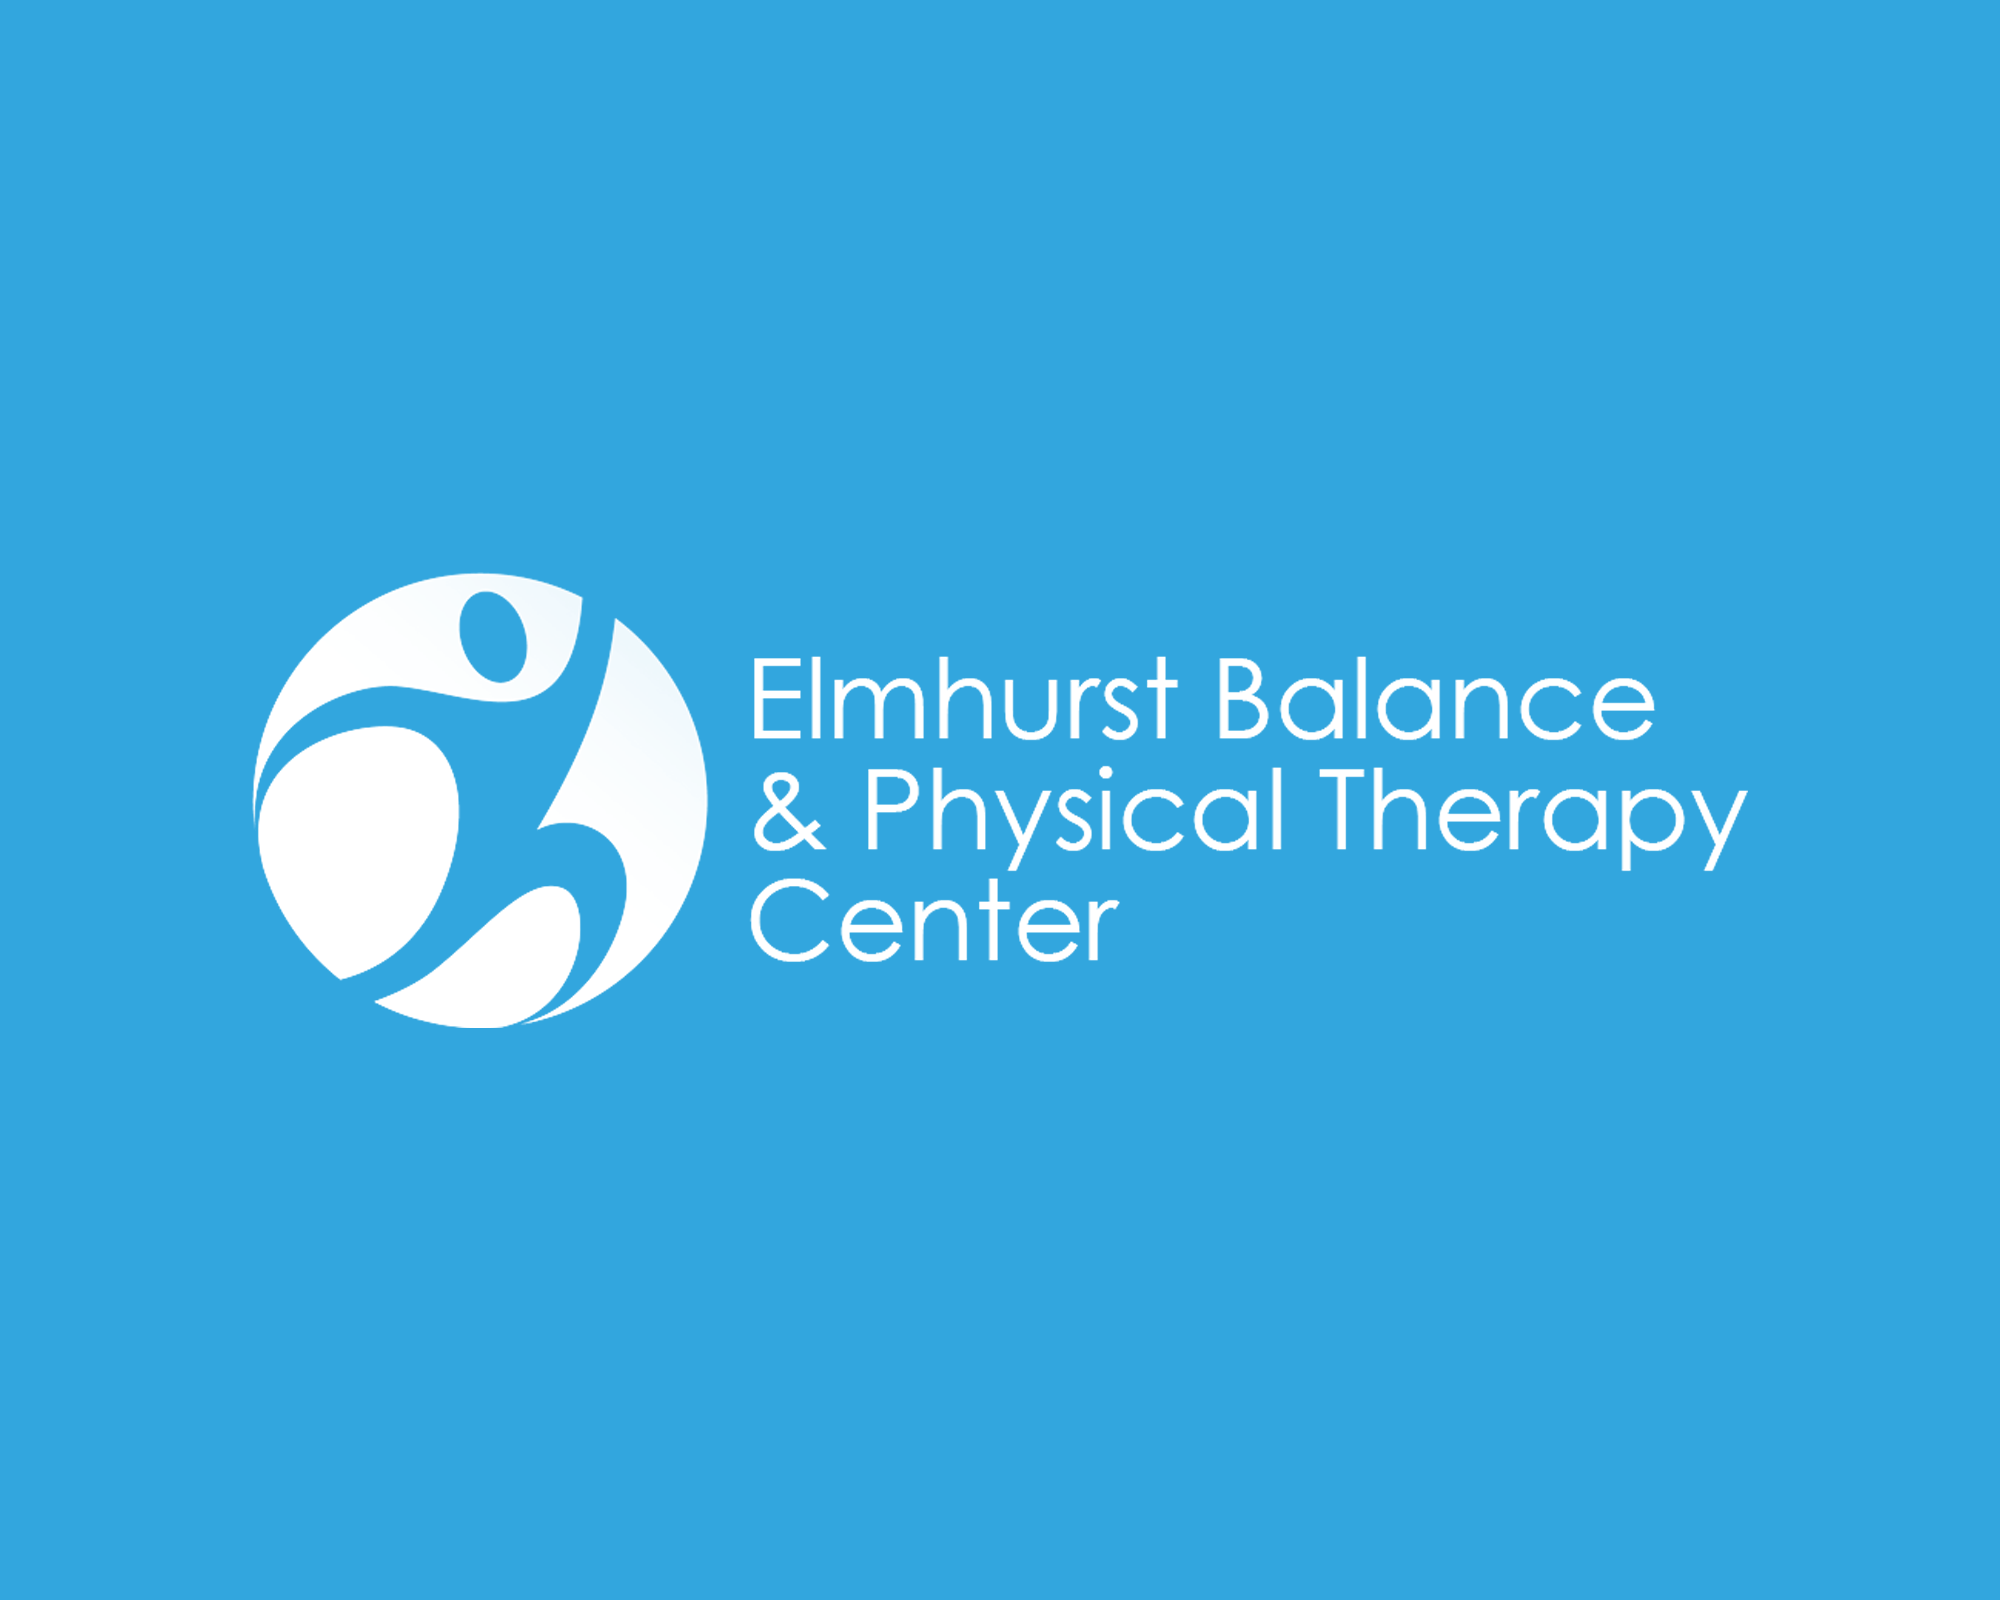 elmhurst balance and physical therapy centre Logo